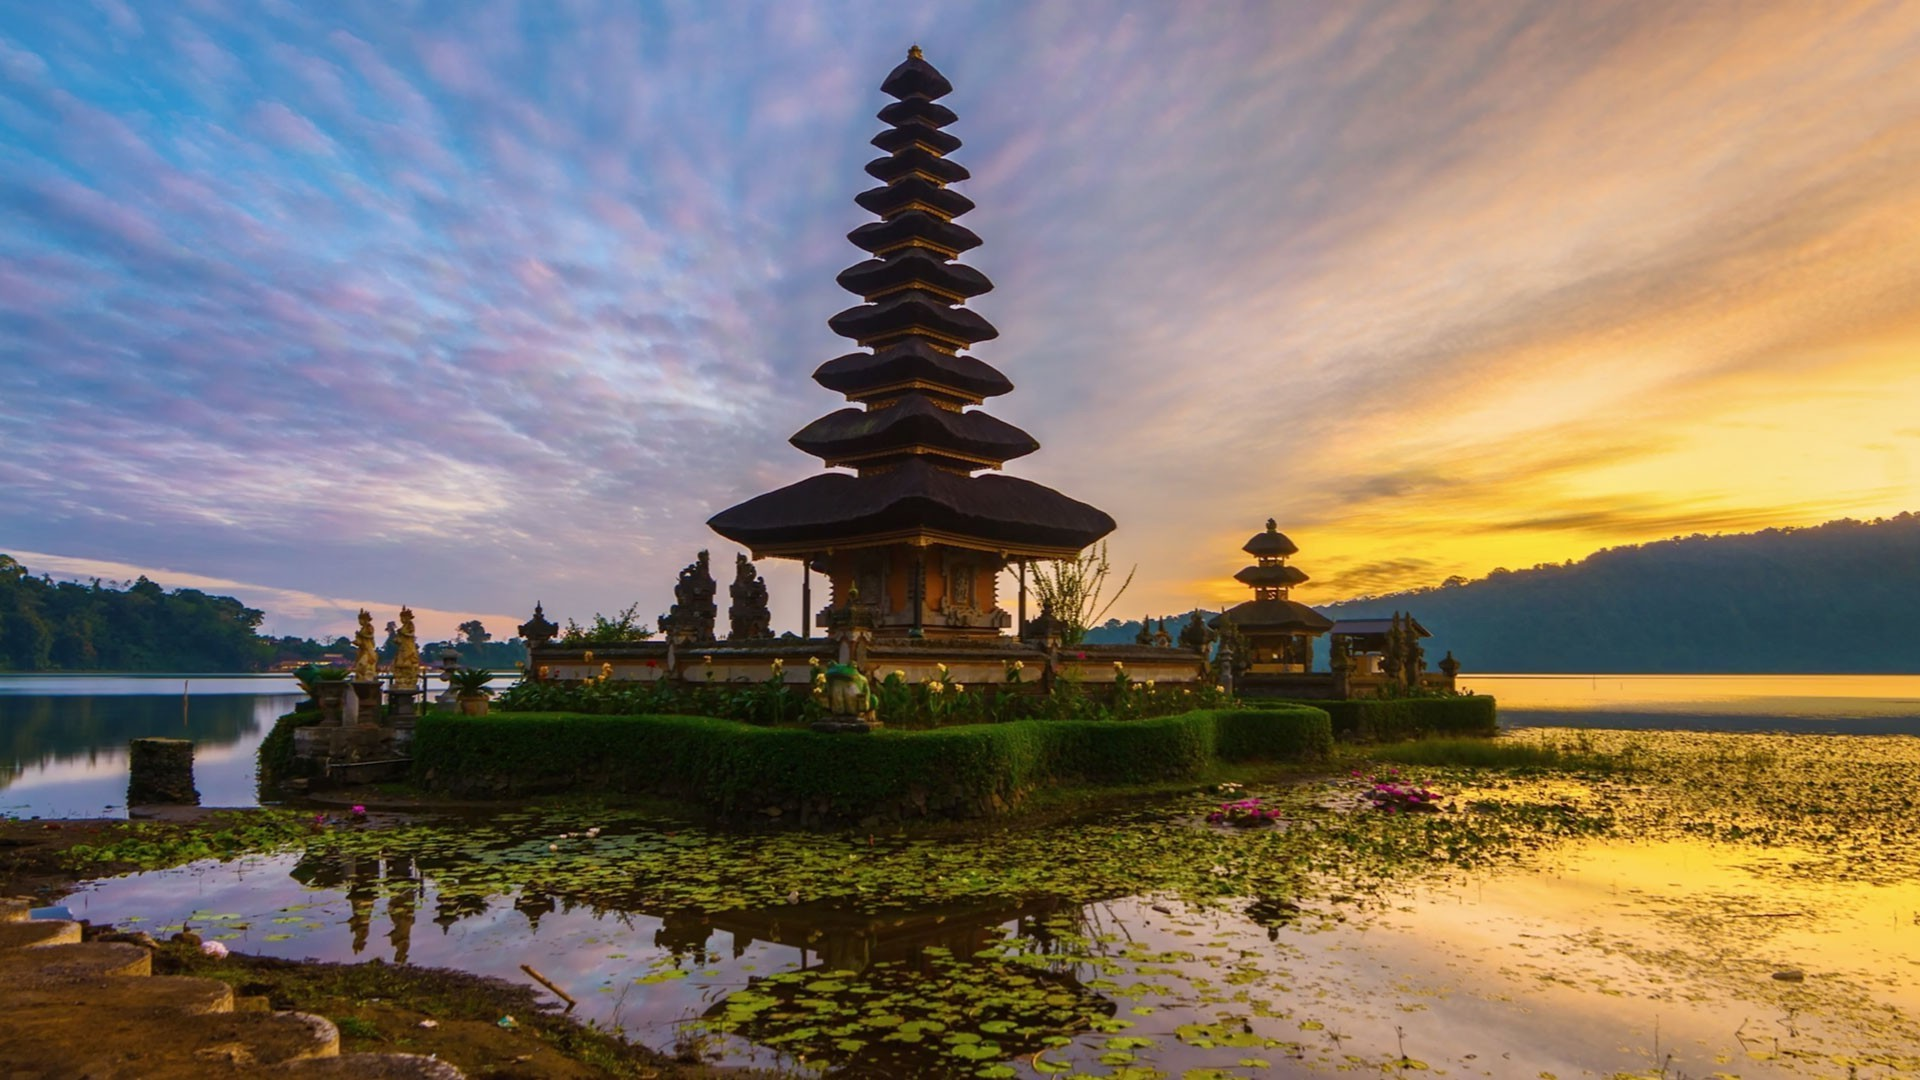 Res: 1920x1080, nature landscape architecture building asian architecture temple bali  indonesia island water lake plants sunset trees forest clouds reflection  wallpaper and ...